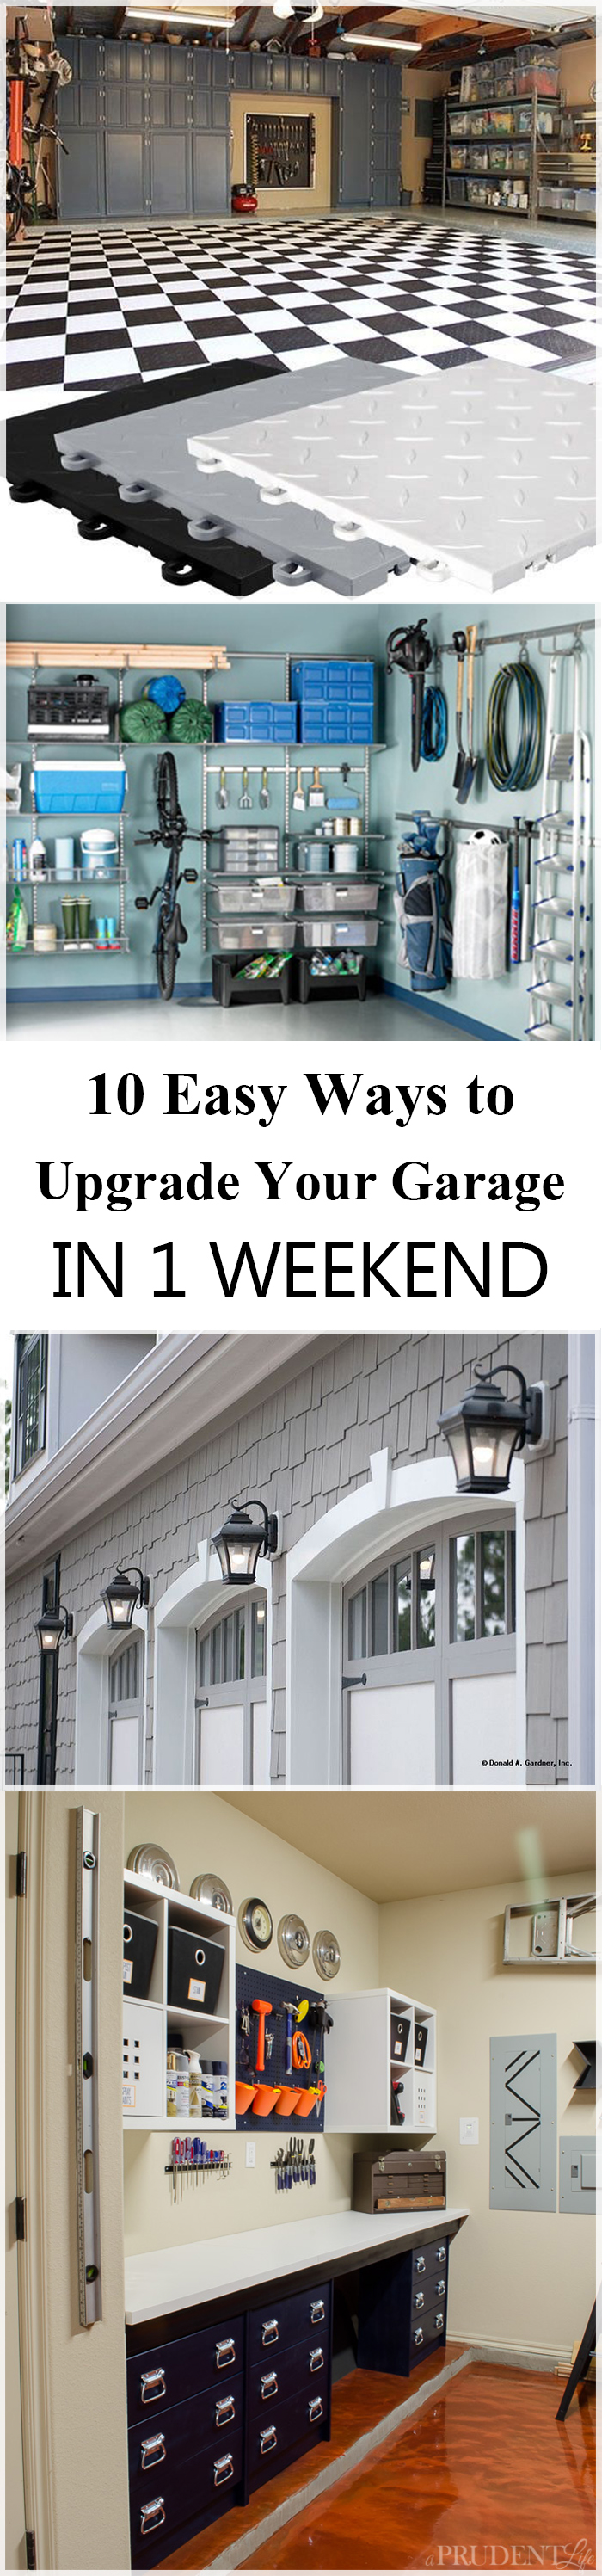 10 Easy Ways to Upgrade Your Garage in 1 Weekend (1)